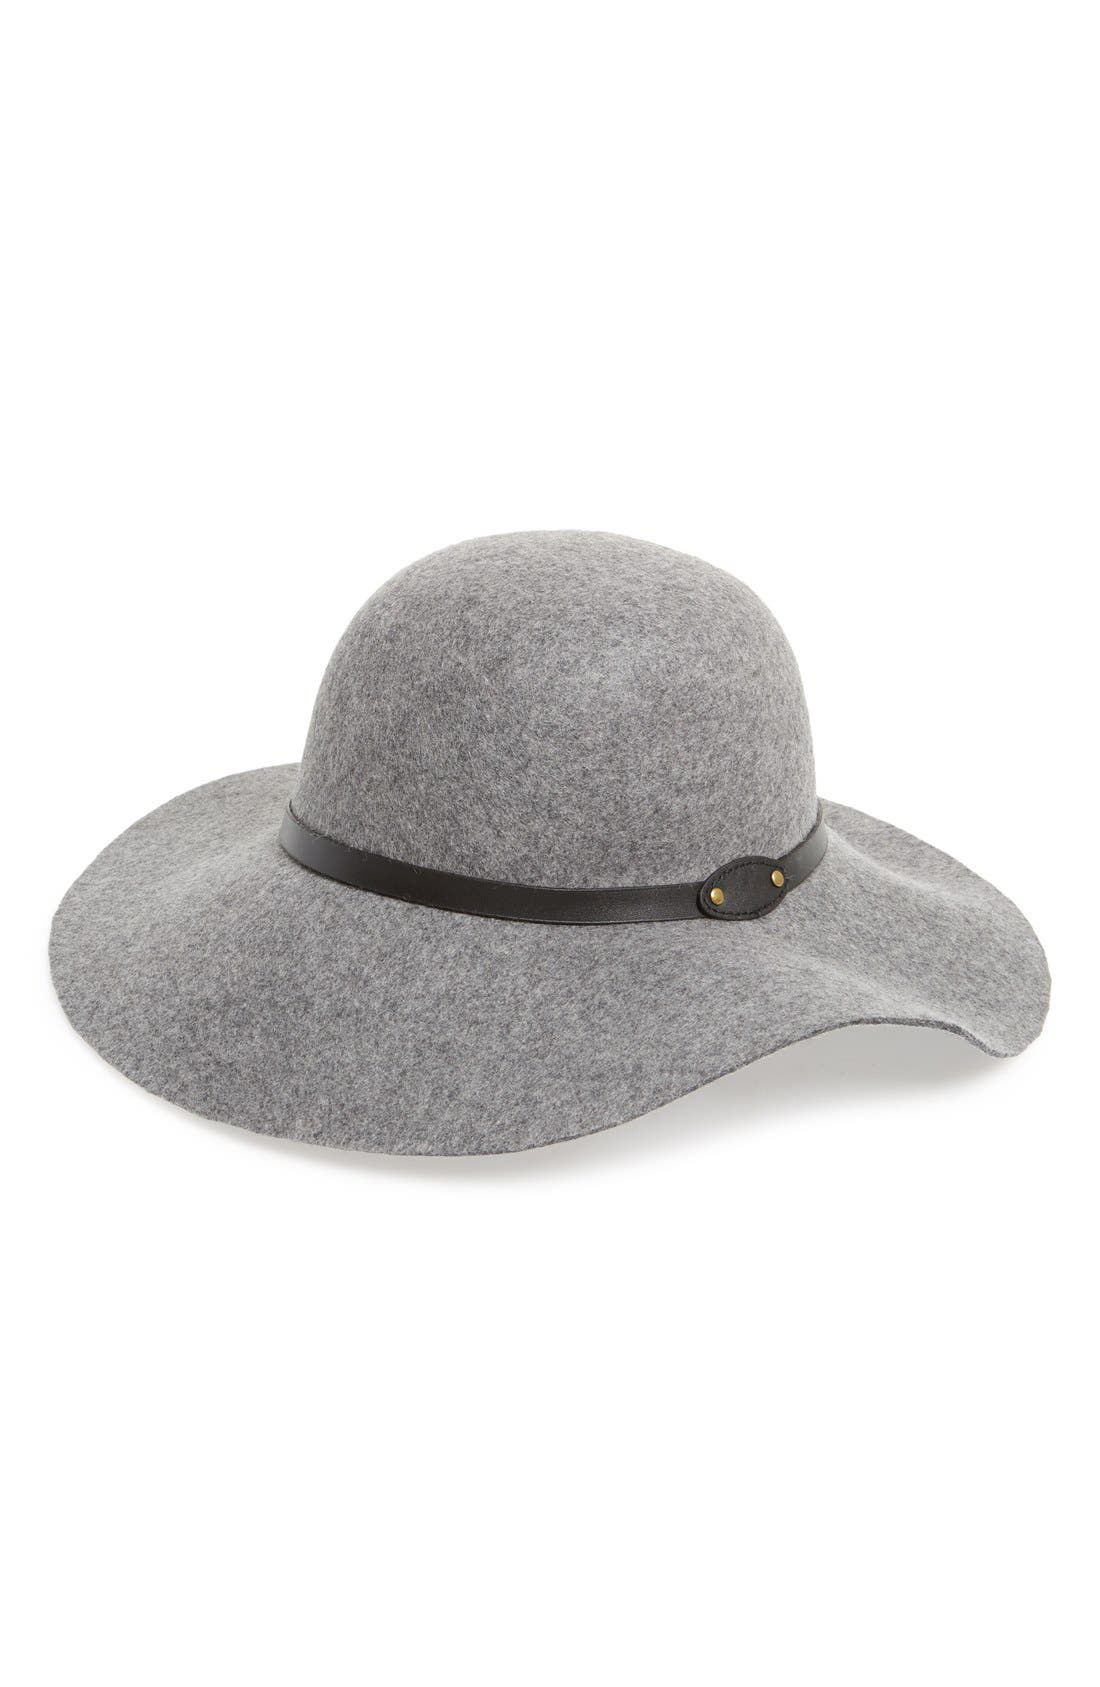 Main Image - David & Young Floppy Wool Hat